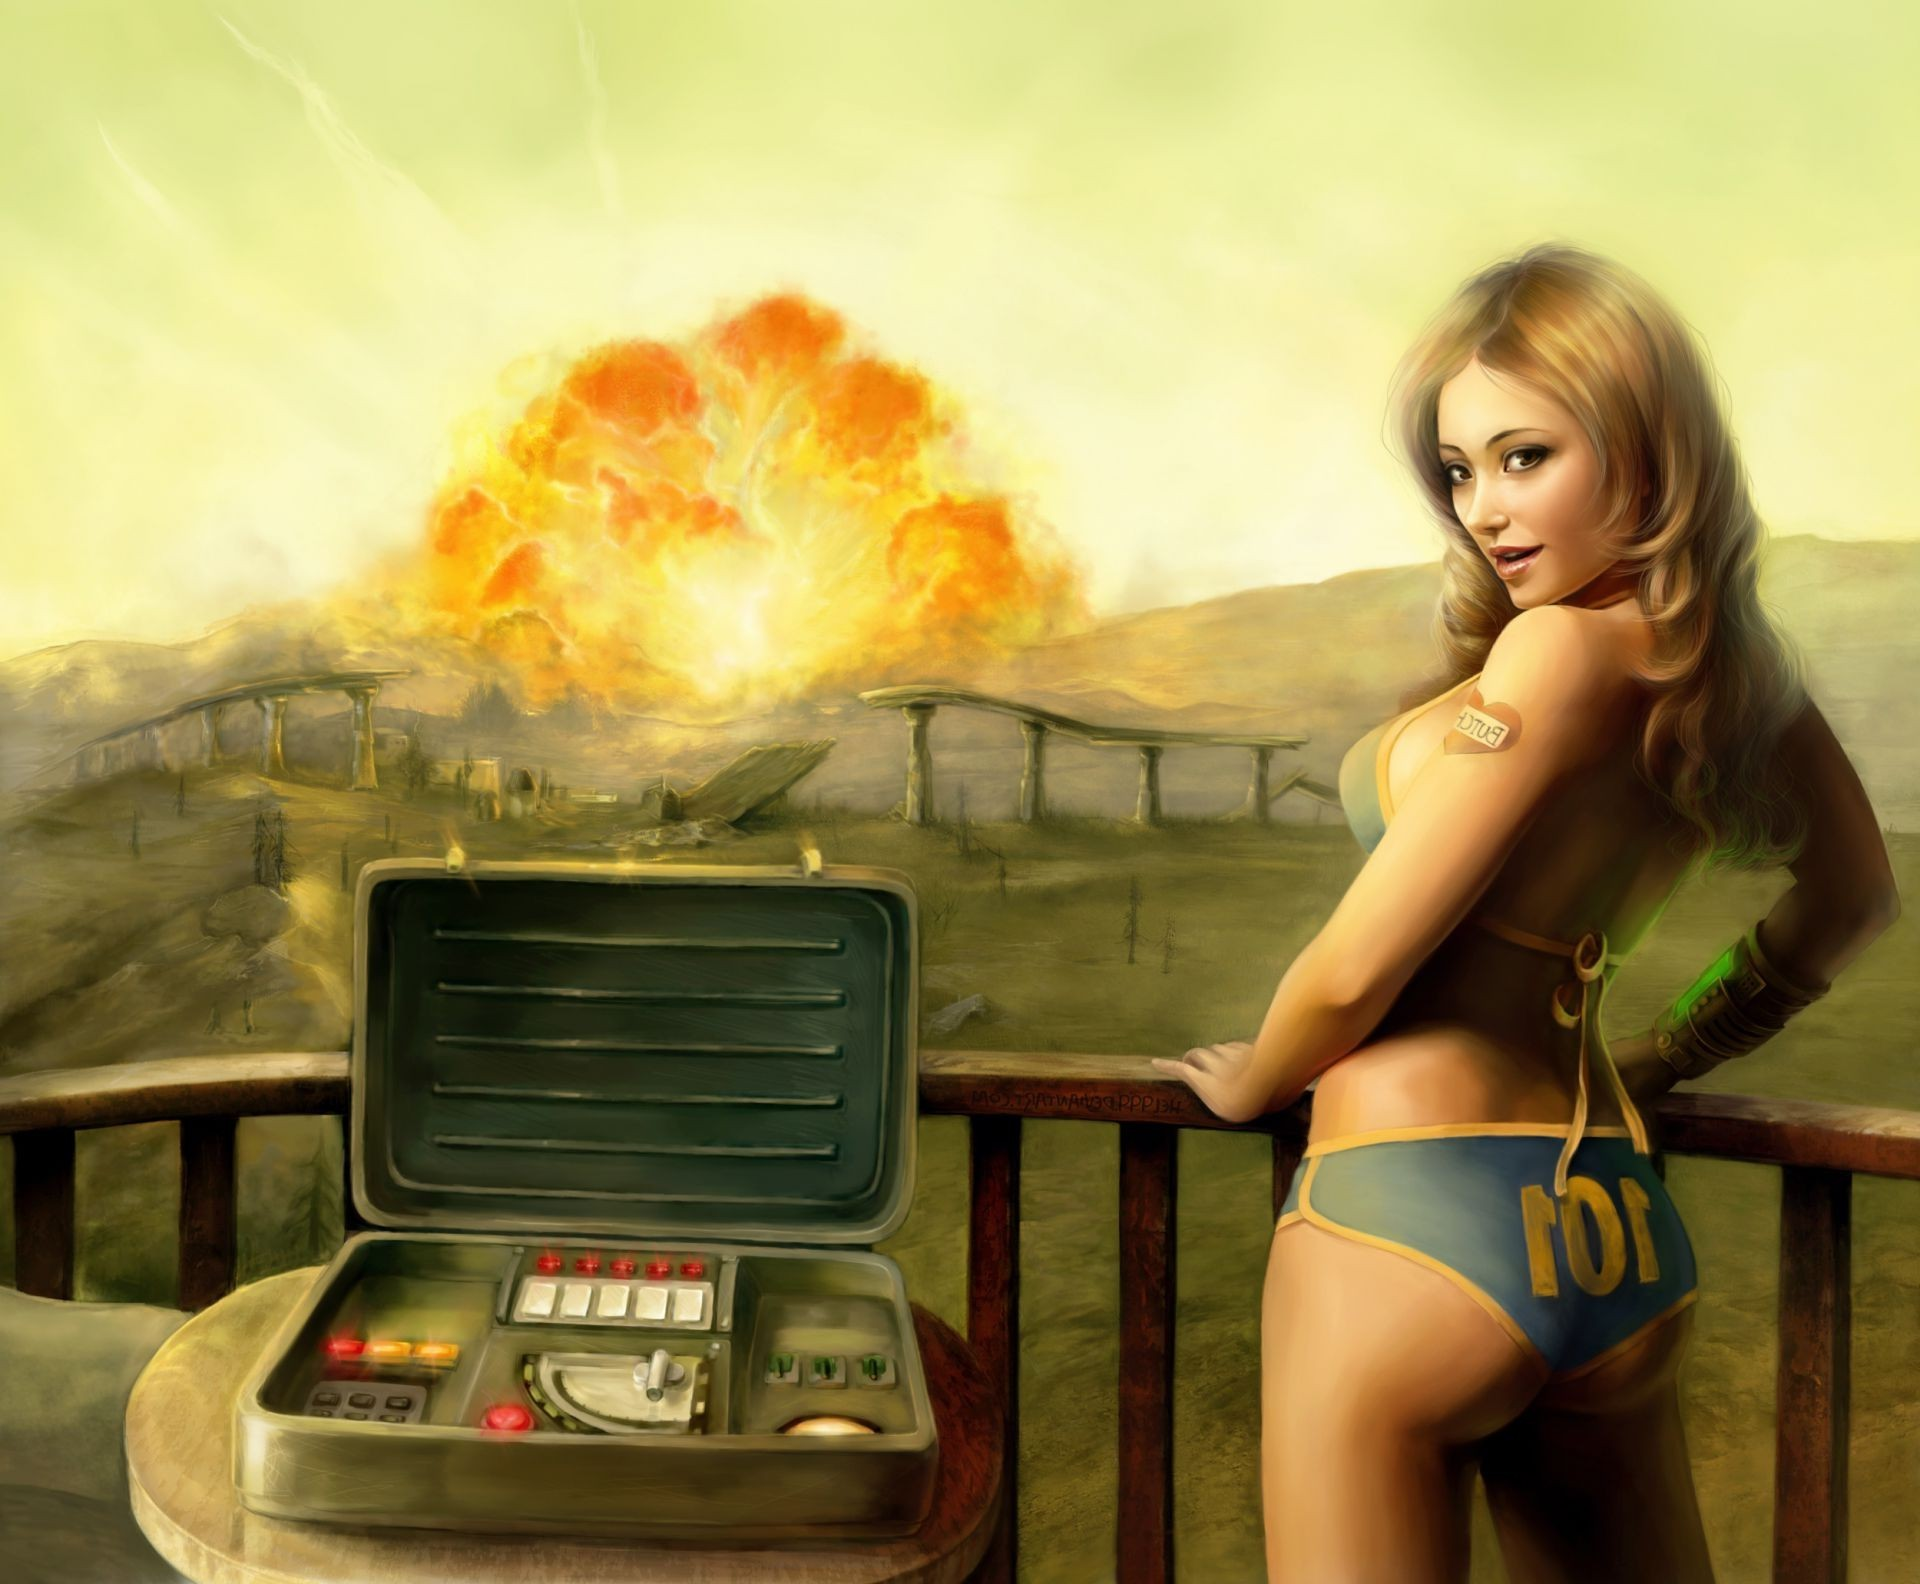 Girls naked in fallout 3 xxx video